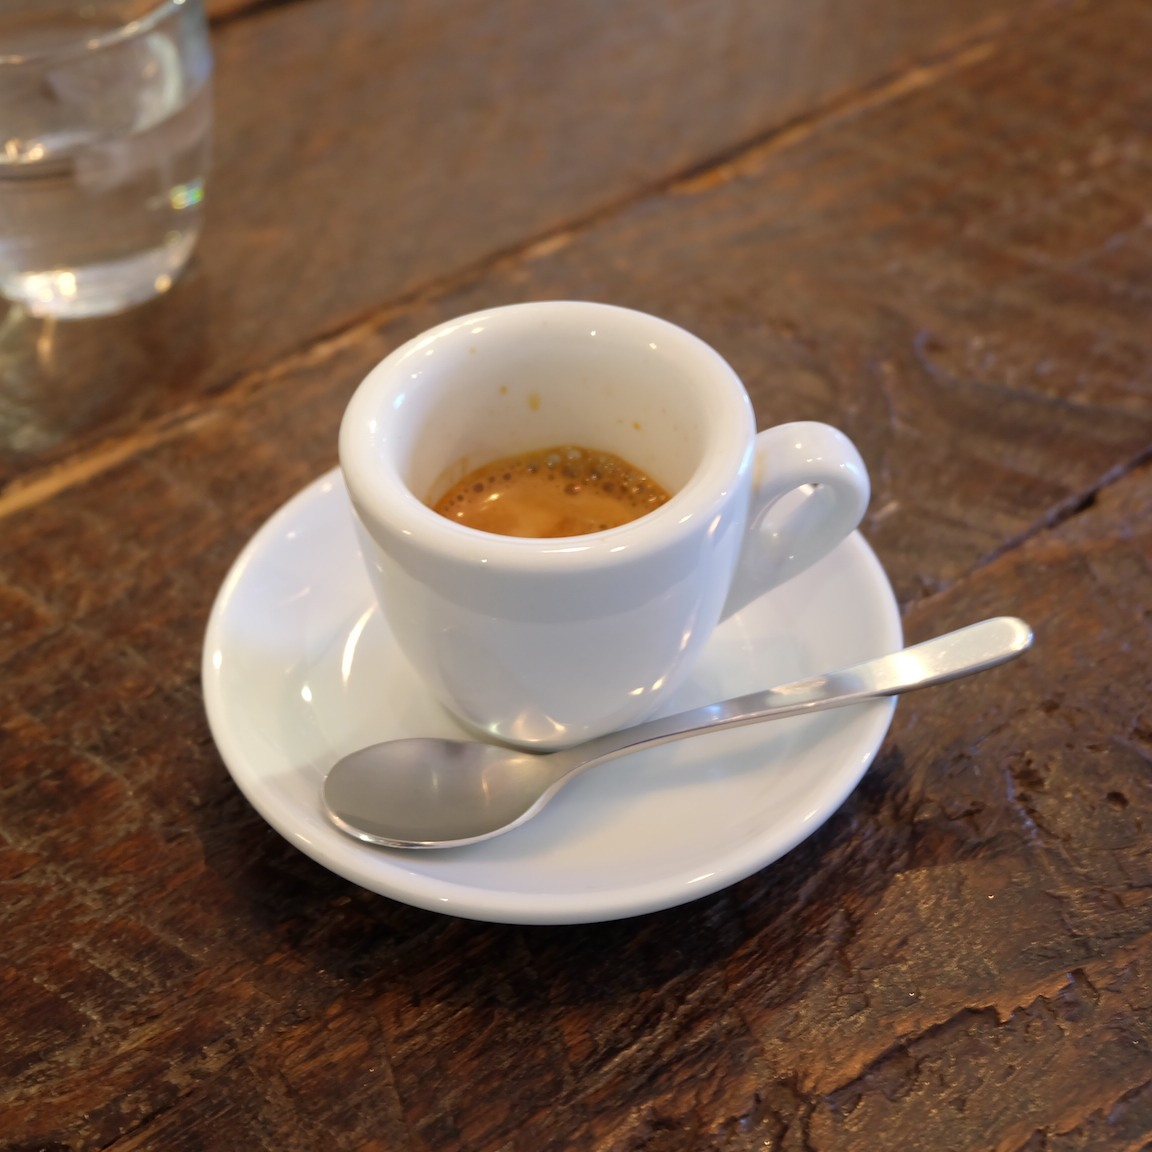 Espresso in white demitasse cup at Iron Coffee at Gotokuji Tokyo Japan